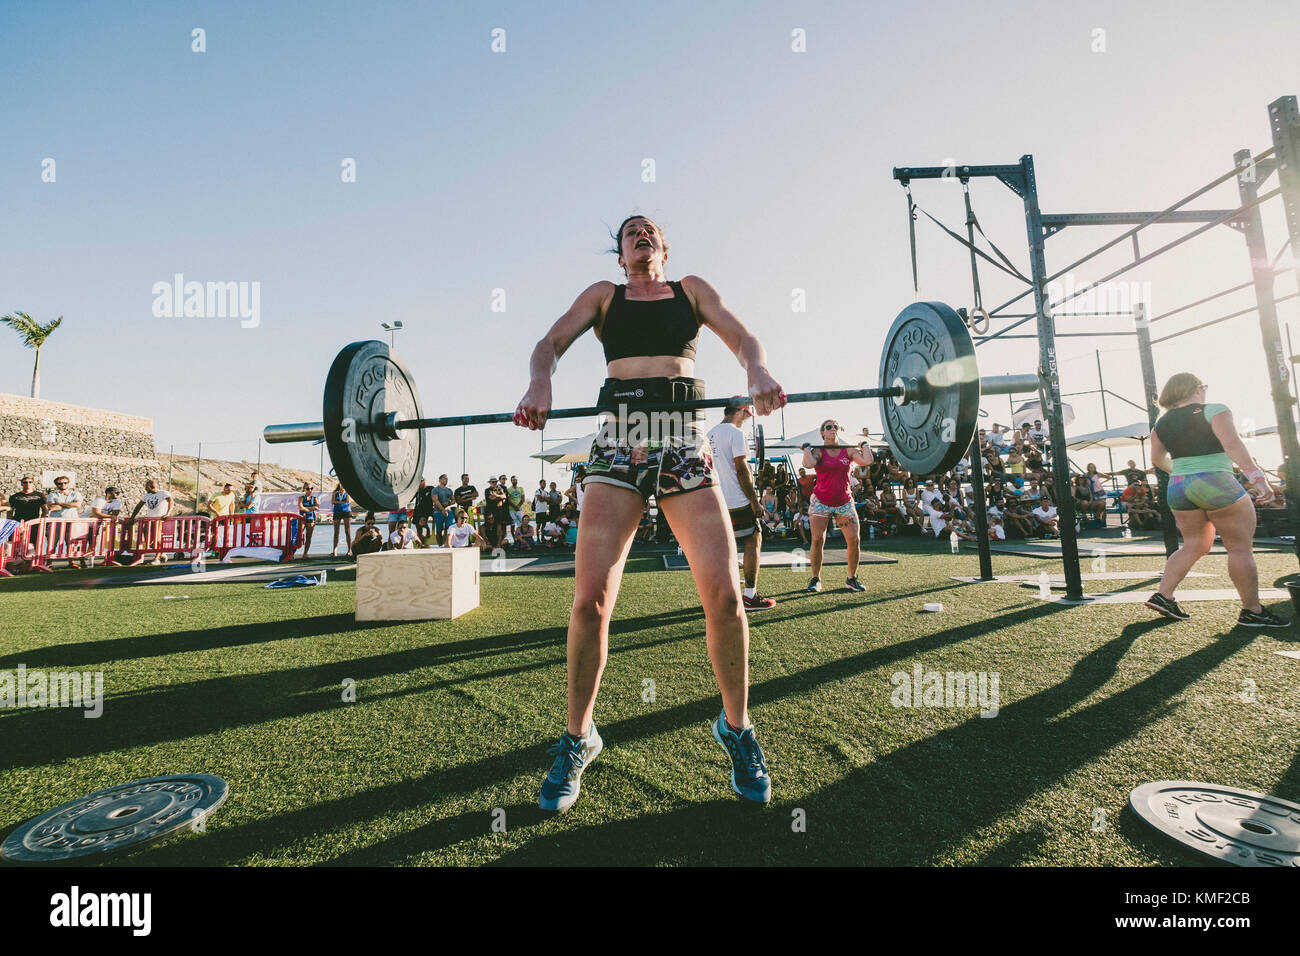 Front view of female athlete lifting weights during competition,Tenerife,Canary Islands,Spain - Stock Image